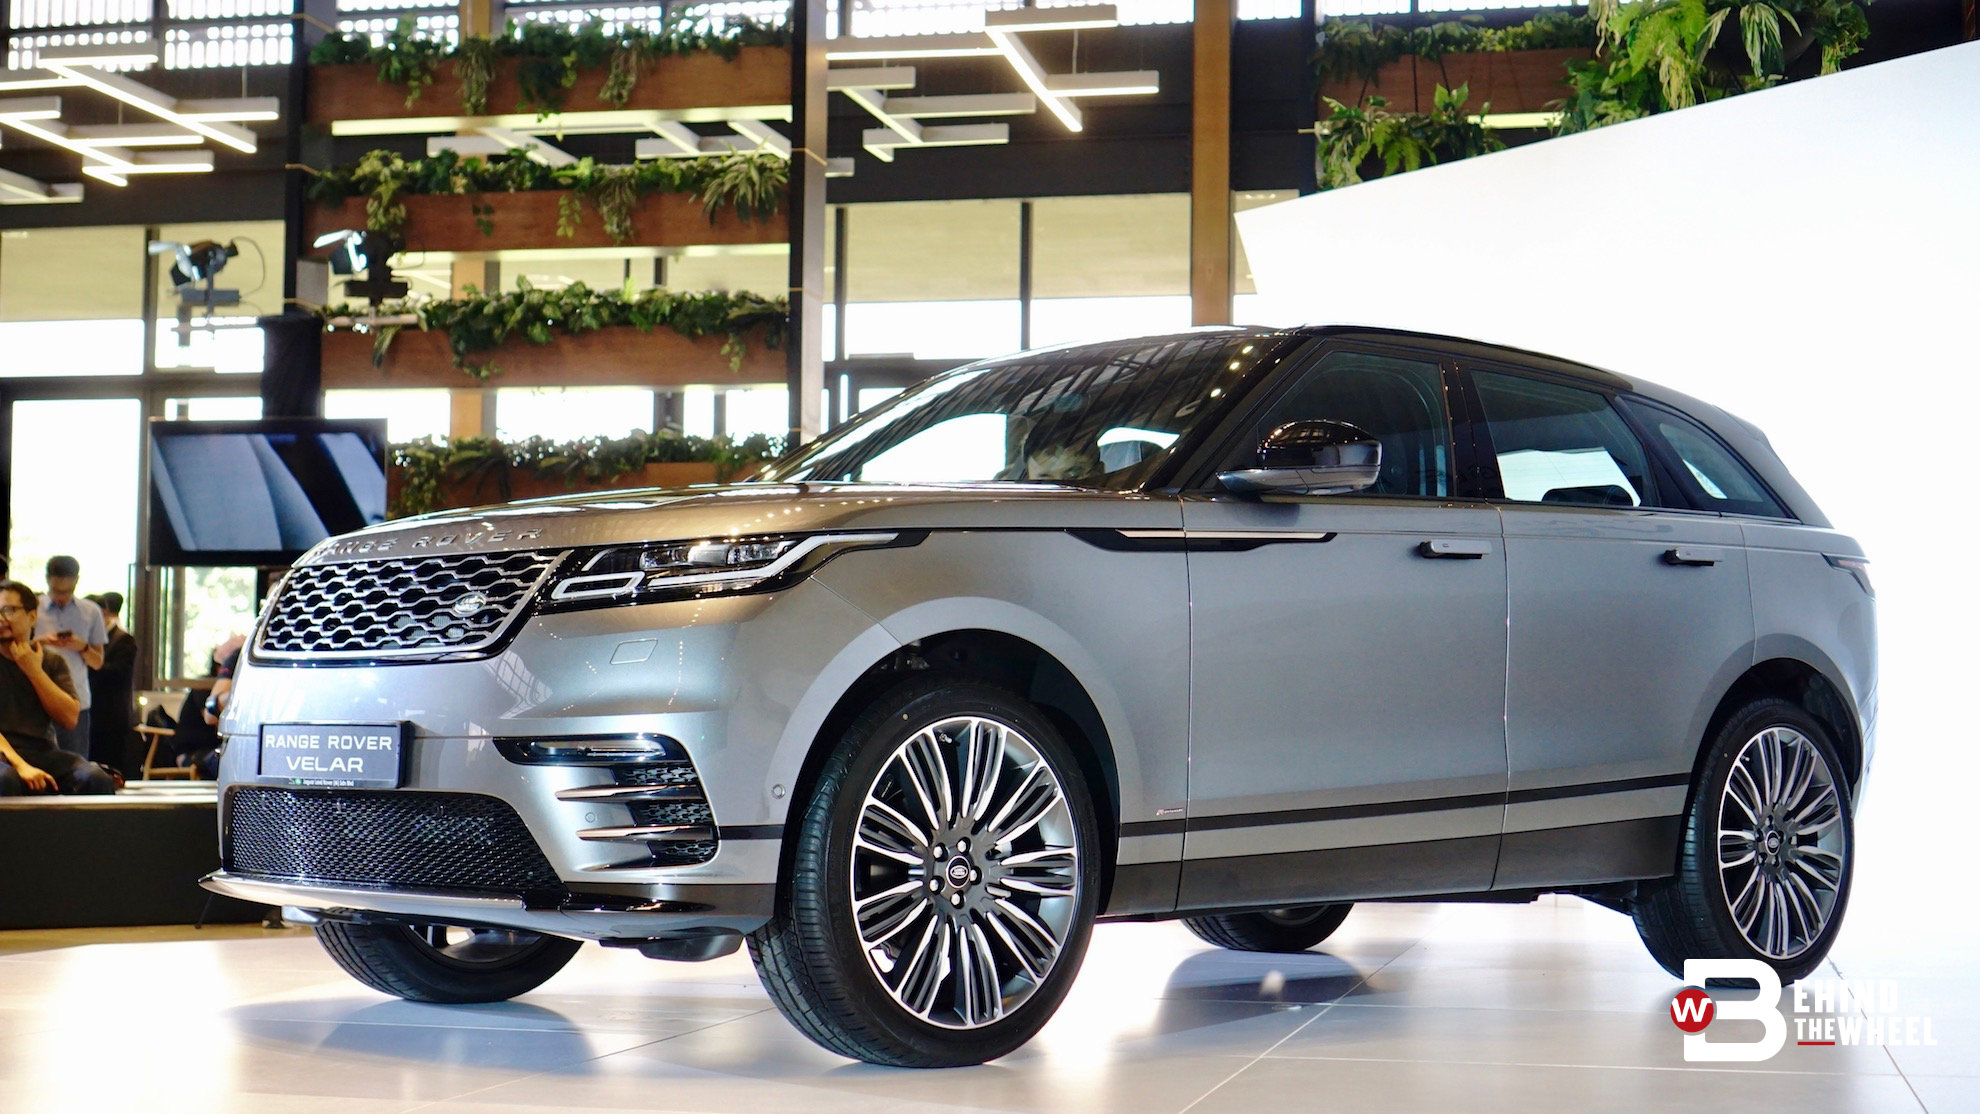 range rover velar has successfully turned all other suvs into uglies